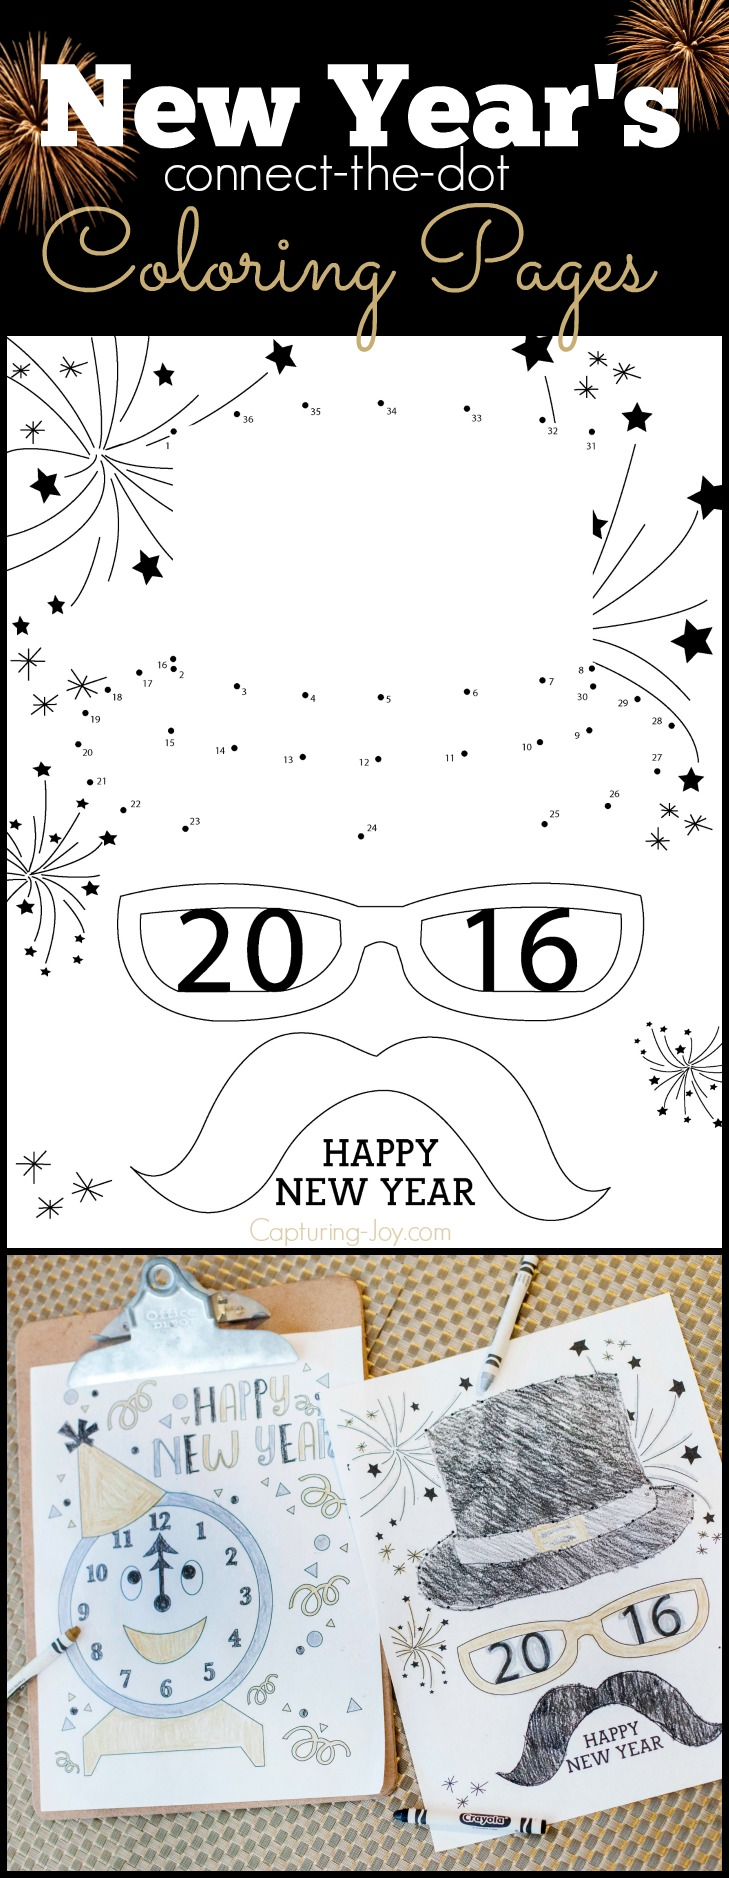 new years eve connect the dots coloring page capturing joy with